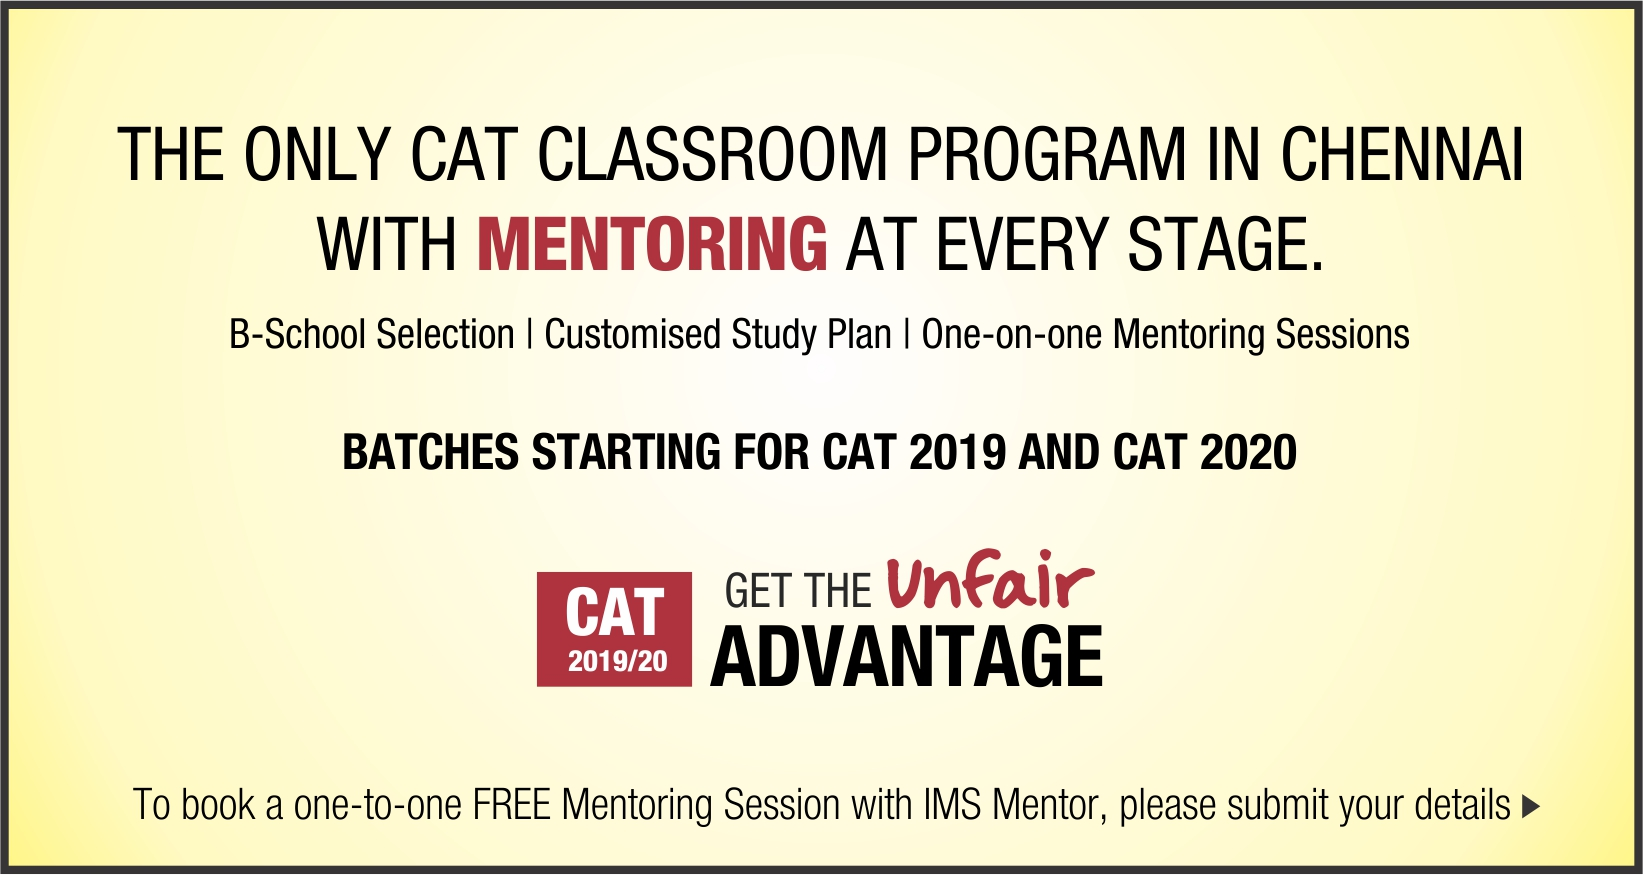 Coaching / Training for entrance exams like CAT, GMAT, GRE